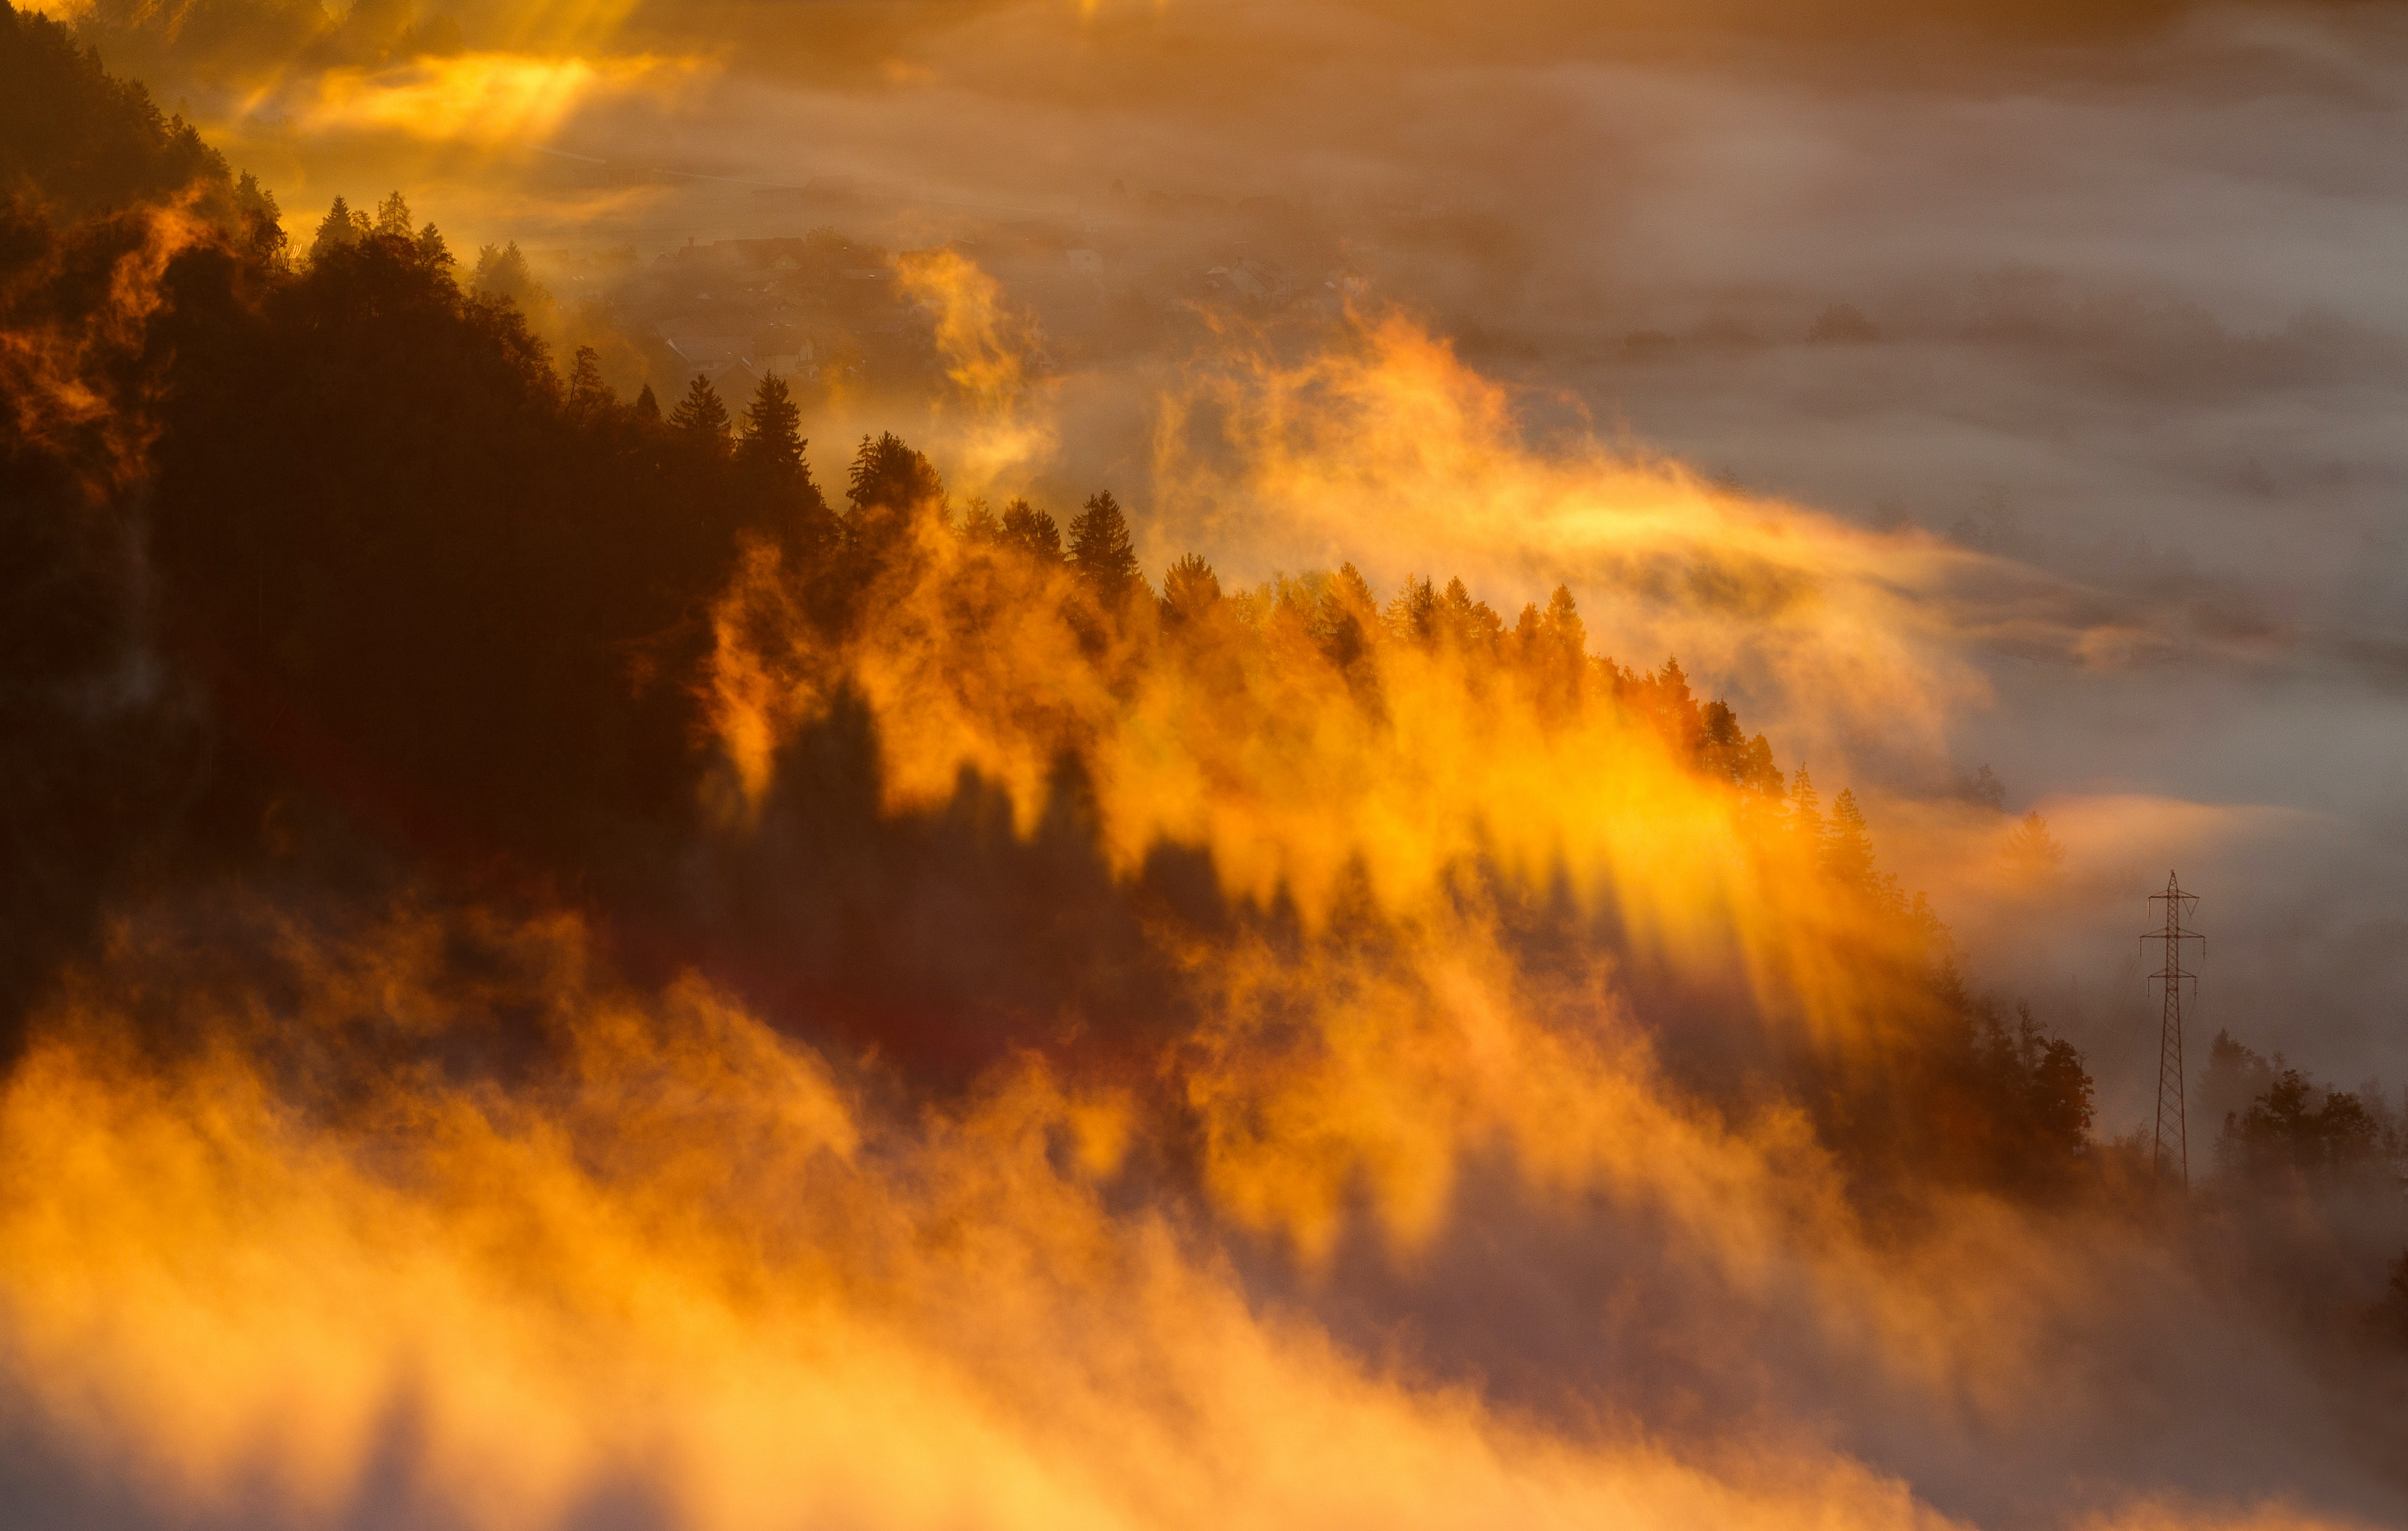 An evergreen forest surrounded by mist during sunset